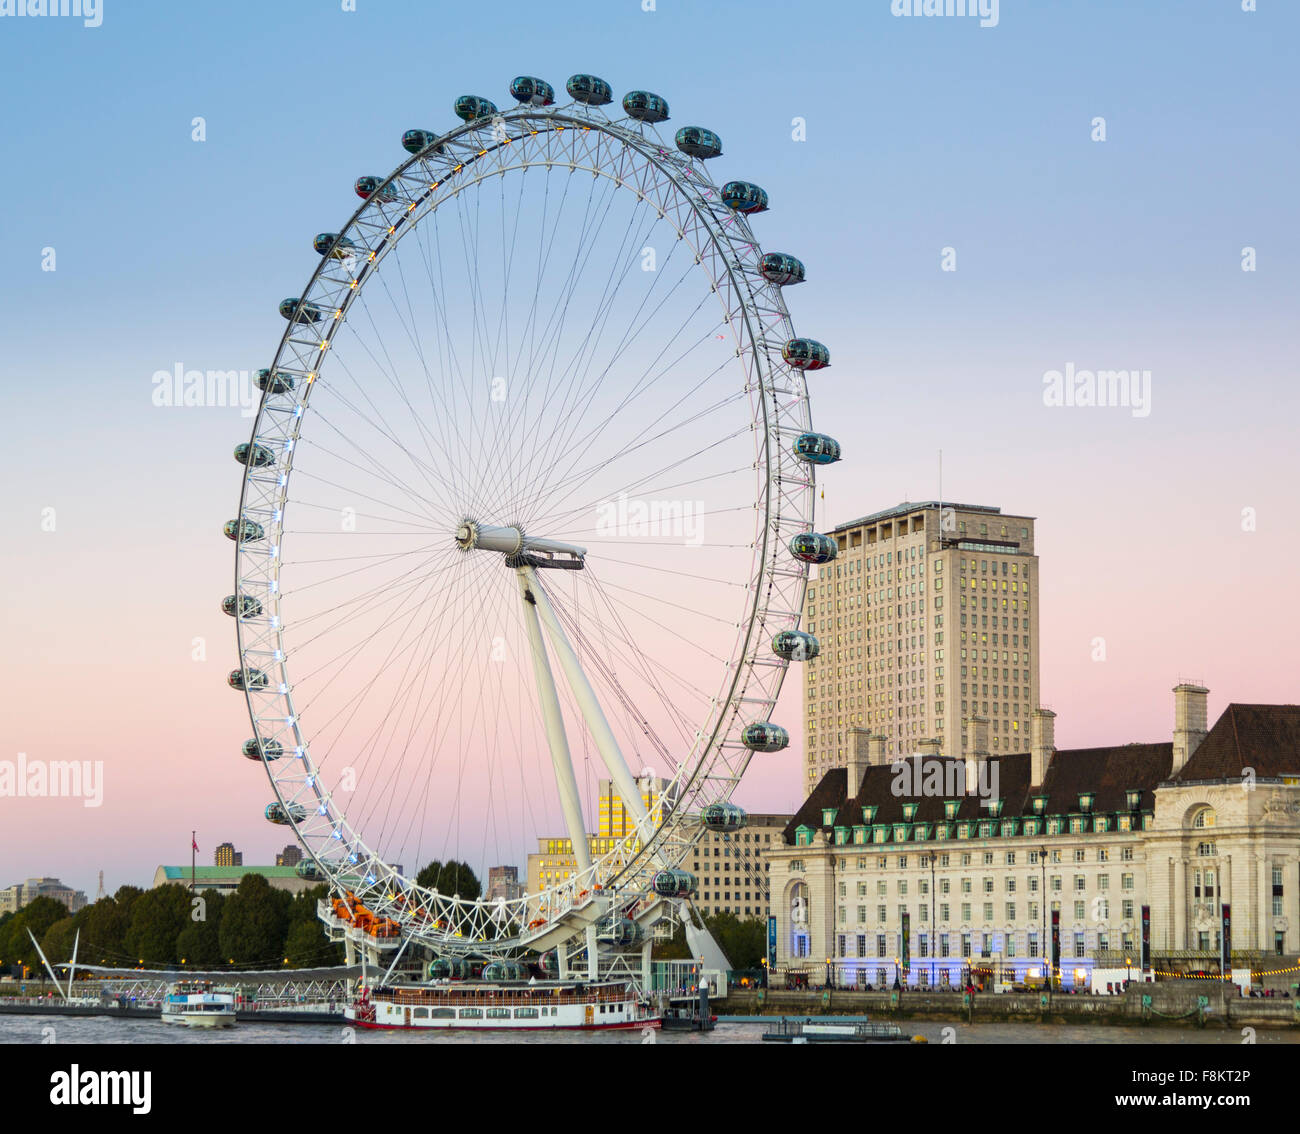 London Eye or Millennium Wheel on the South Bank of the River Thames in London England, Uk - Stock Image